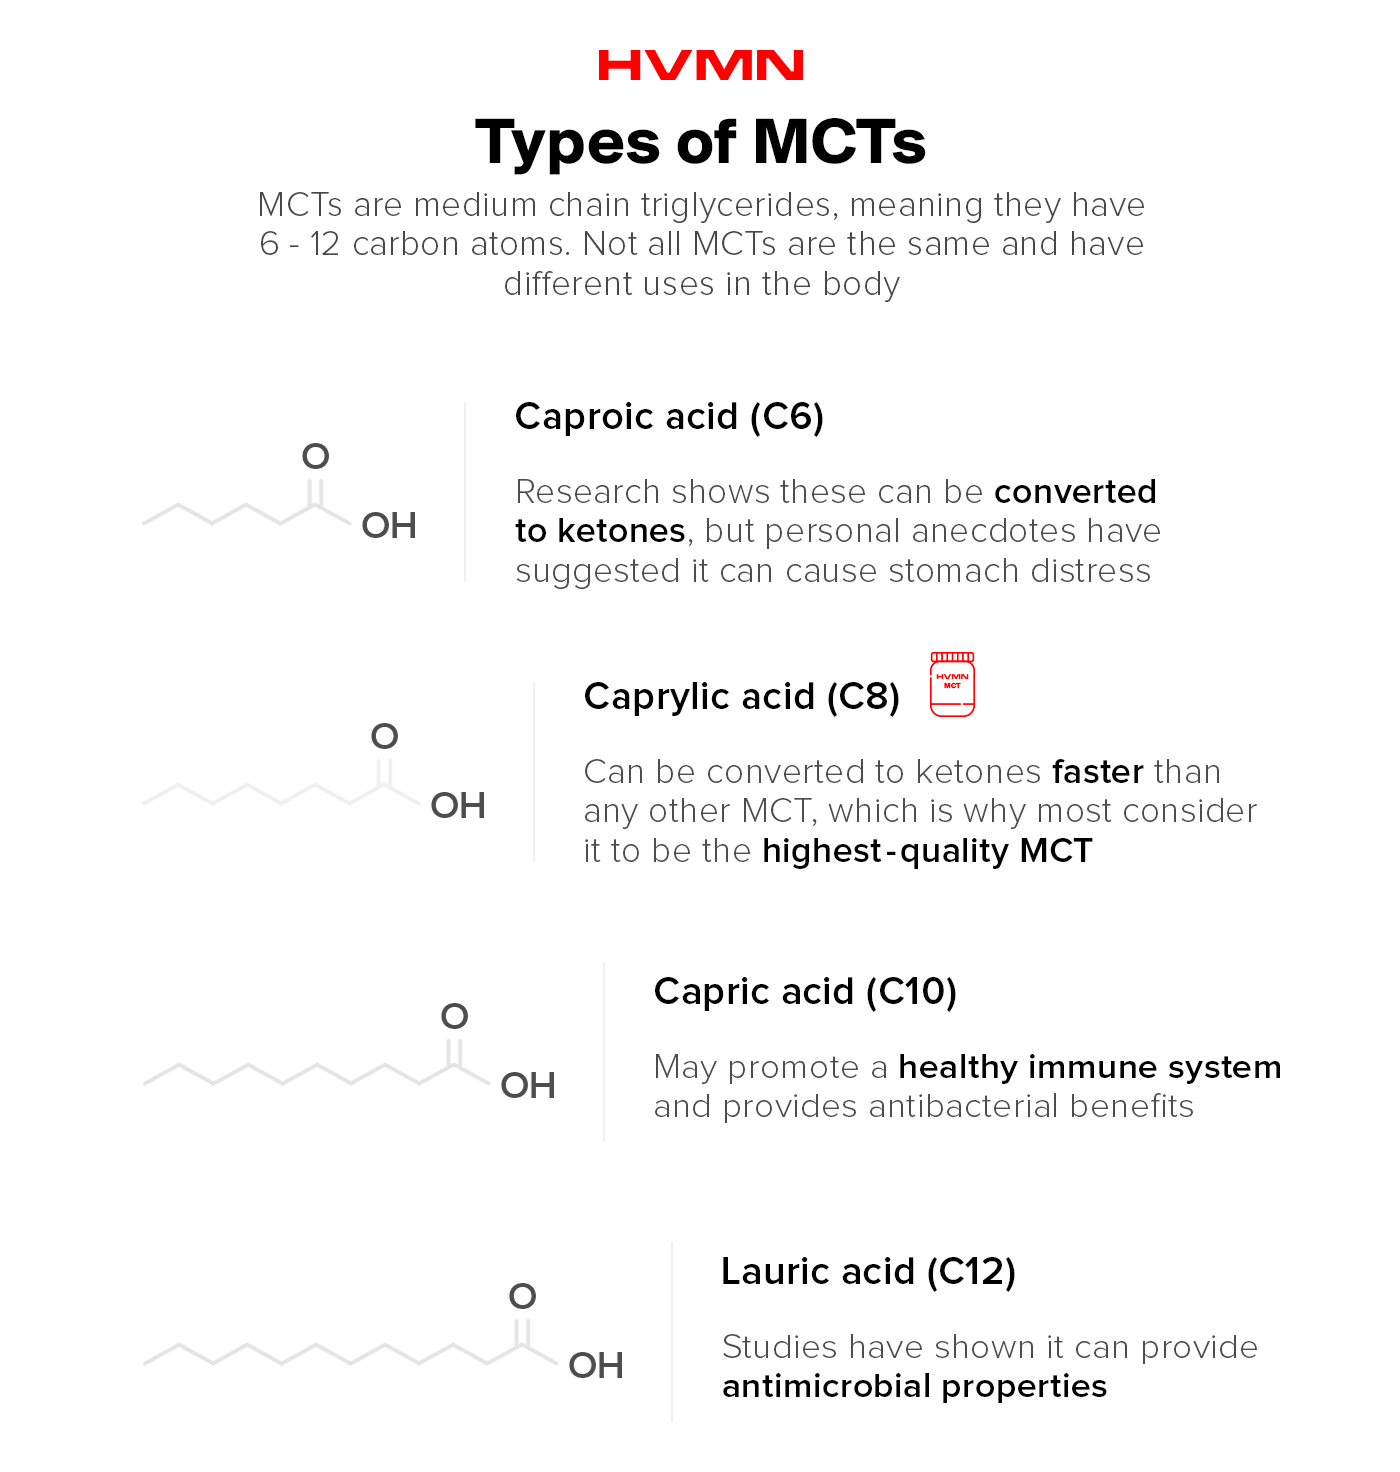 There are four types of MCTs including Caproic Acid, Caprylic Acid, Capric Acid, and Lauric Acid. Caproic acid may cause stomach distress. Caprylic Acid is the highest quality MCT. Capric Acid provides immune system benefits. Lauric Acid has been shown to have antimicrobial benefits,